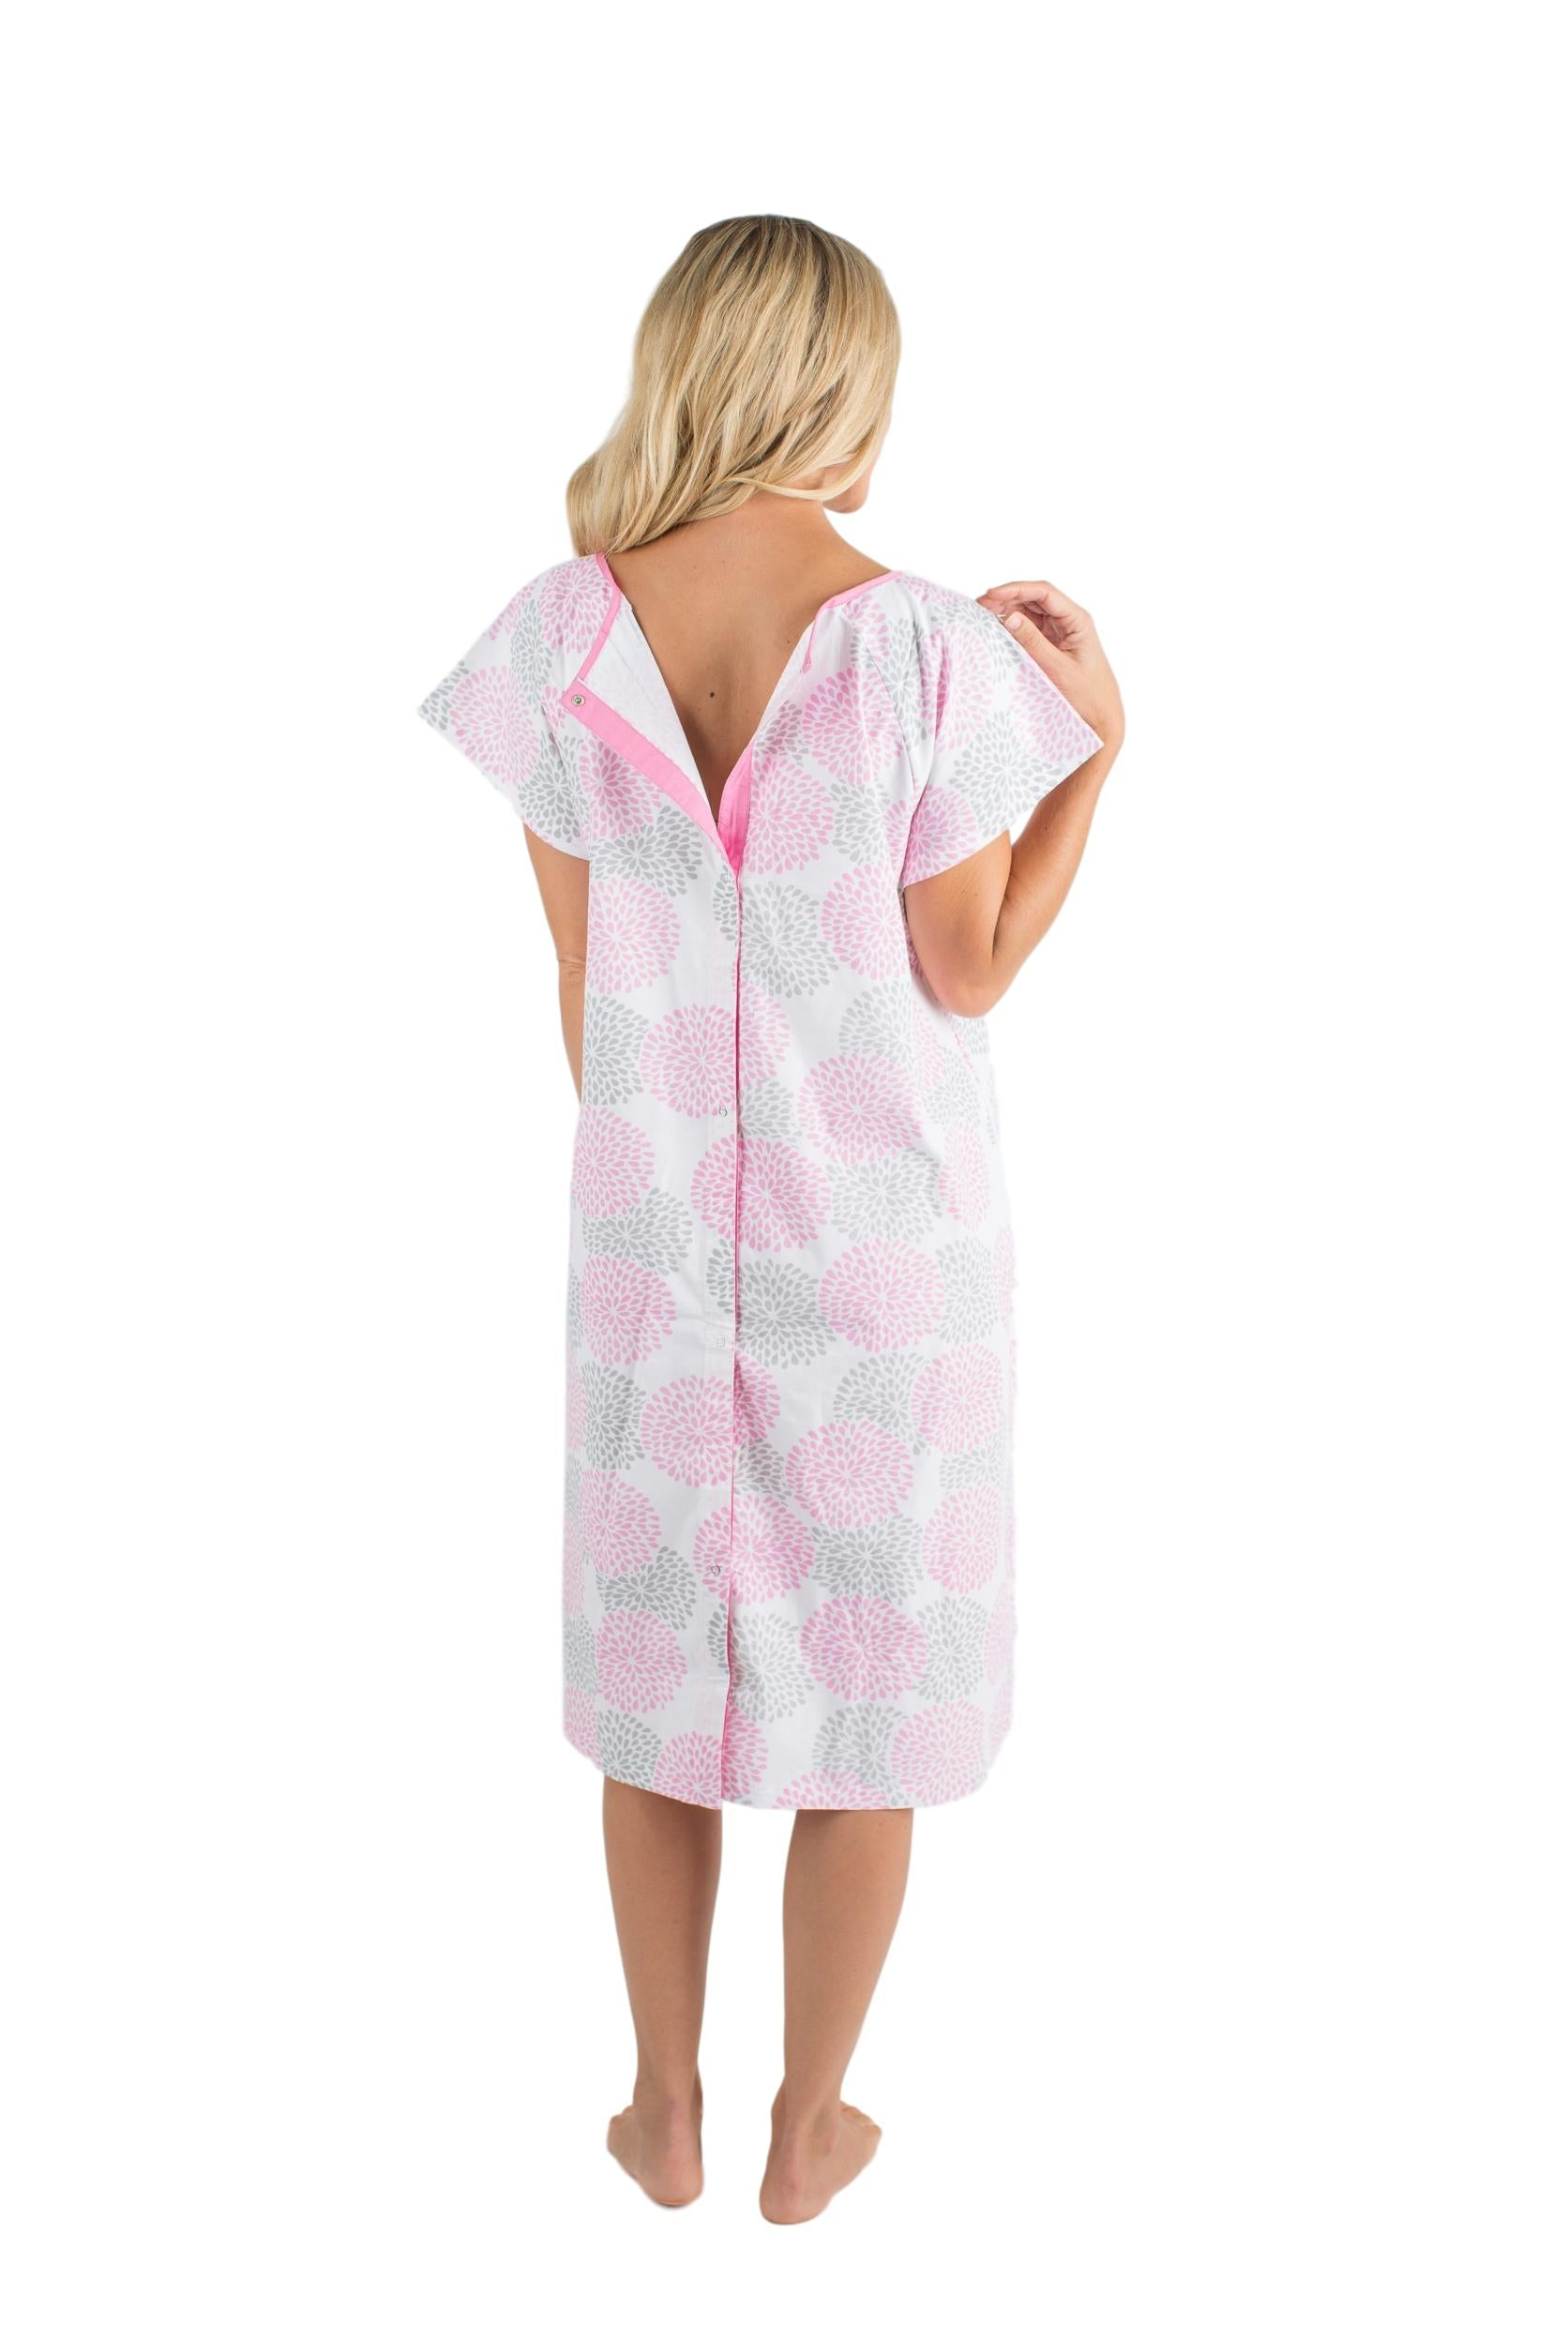 Lilly Maternity Labor and Delivery Hospital Gown Gownie & Matching Pillowcase Set